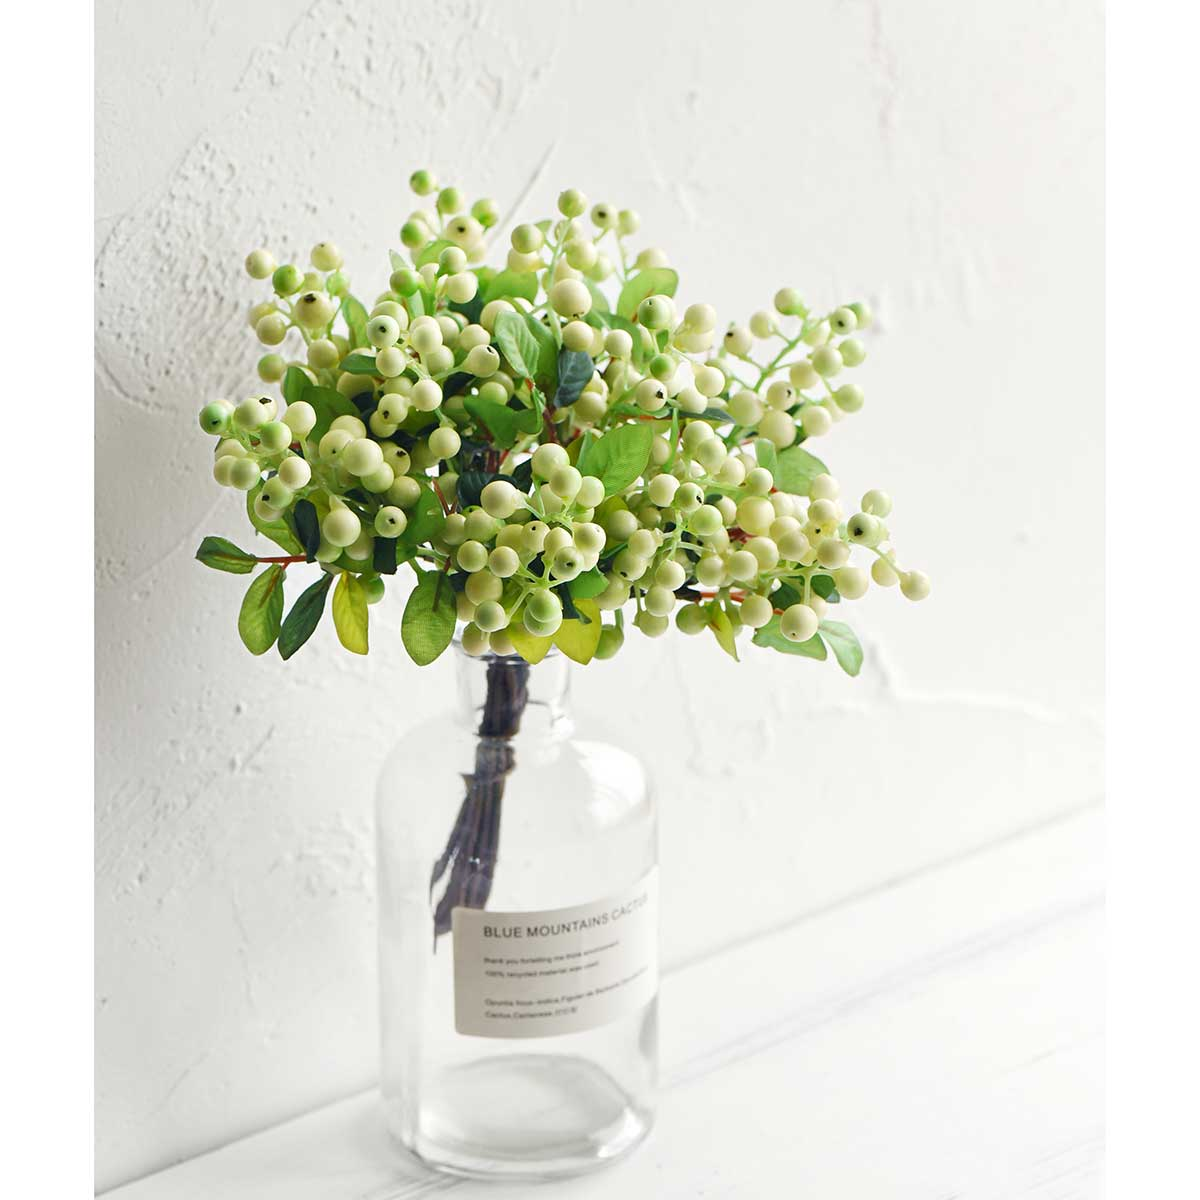 10 Stems Artificial Green Berry Bouquet 9.8 Inches (25cm)